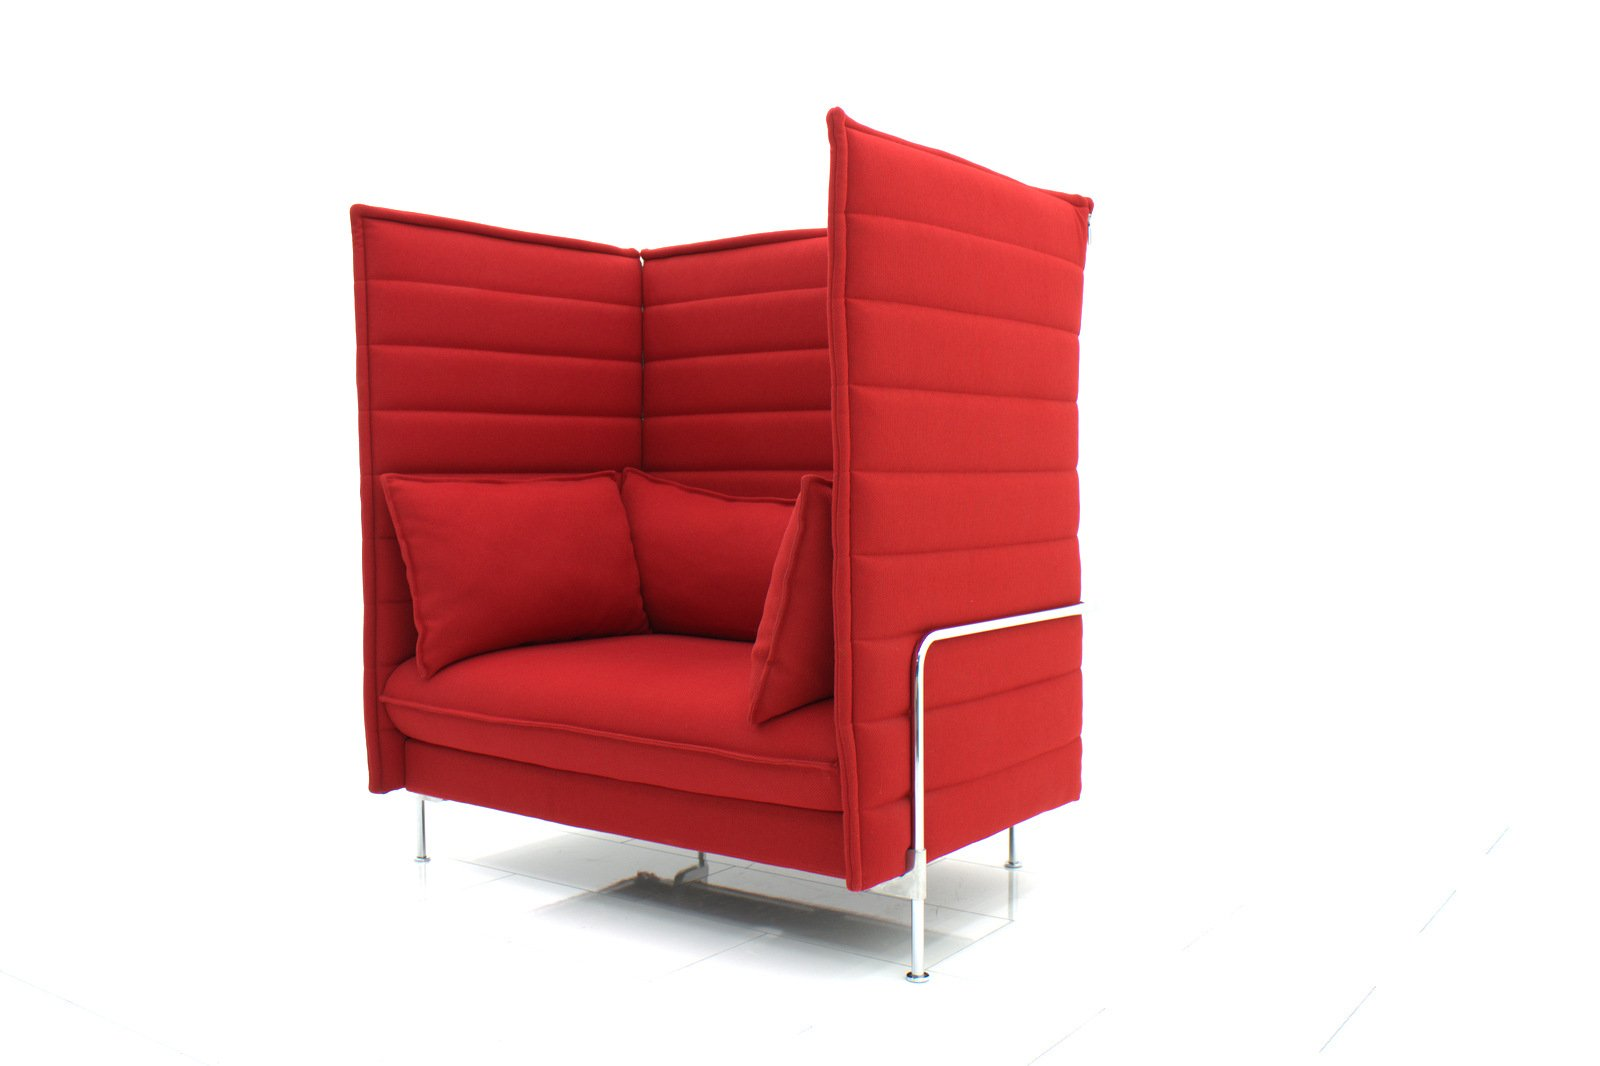 Alcove High Back Loveseat By Ronan Erwan Bouroullec For Vitra 2006 For Sale At Pamono